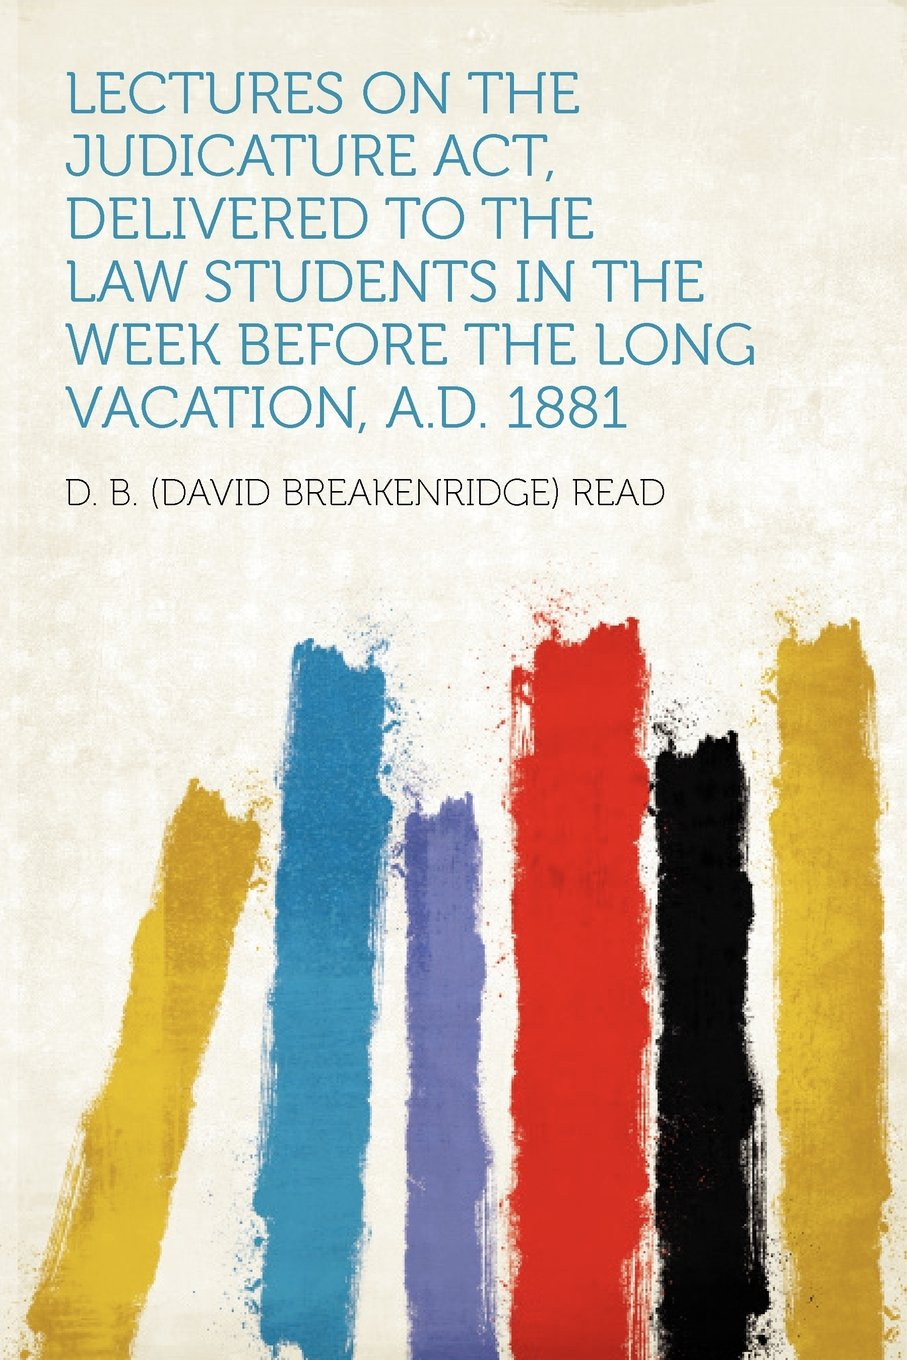 Download Lectures on the Judicature Act, Delivered to the Law Students in the Week Before the Long Vacation, A.D. 1881 ebook